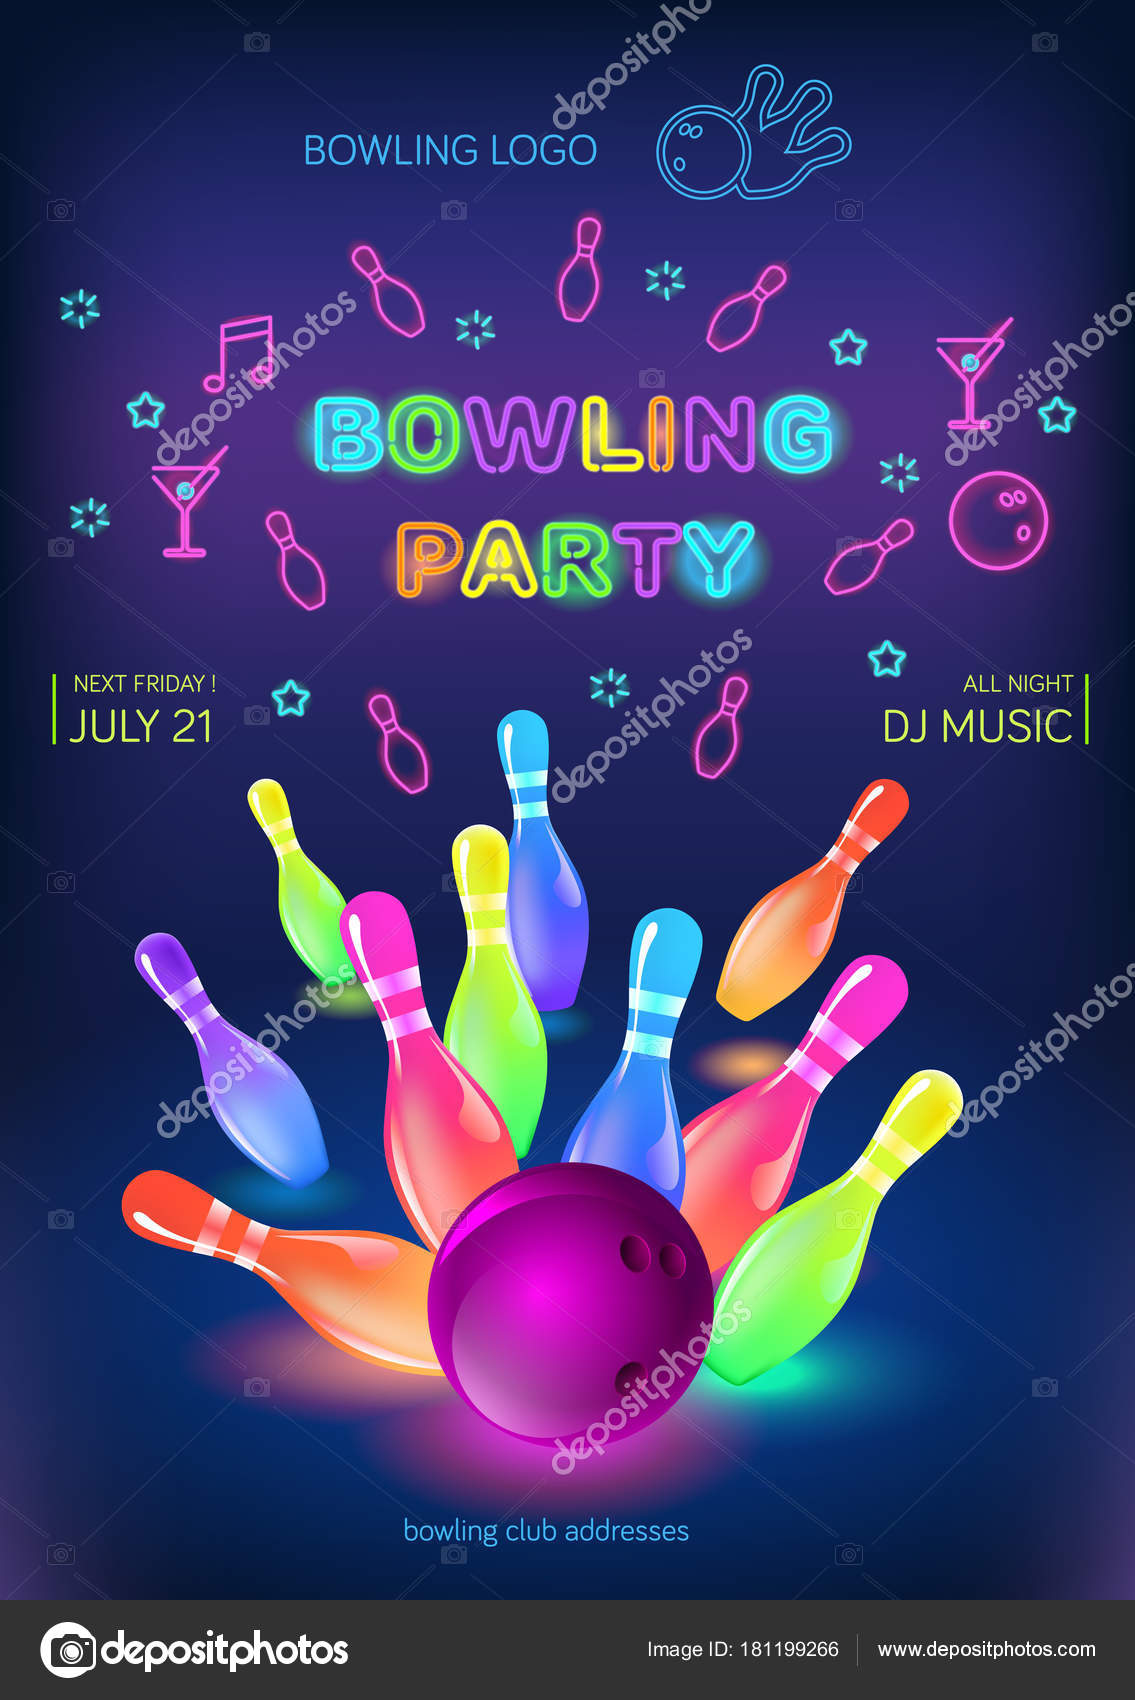 Bowling Party Template Format Size Vector Clip Art Illustration.